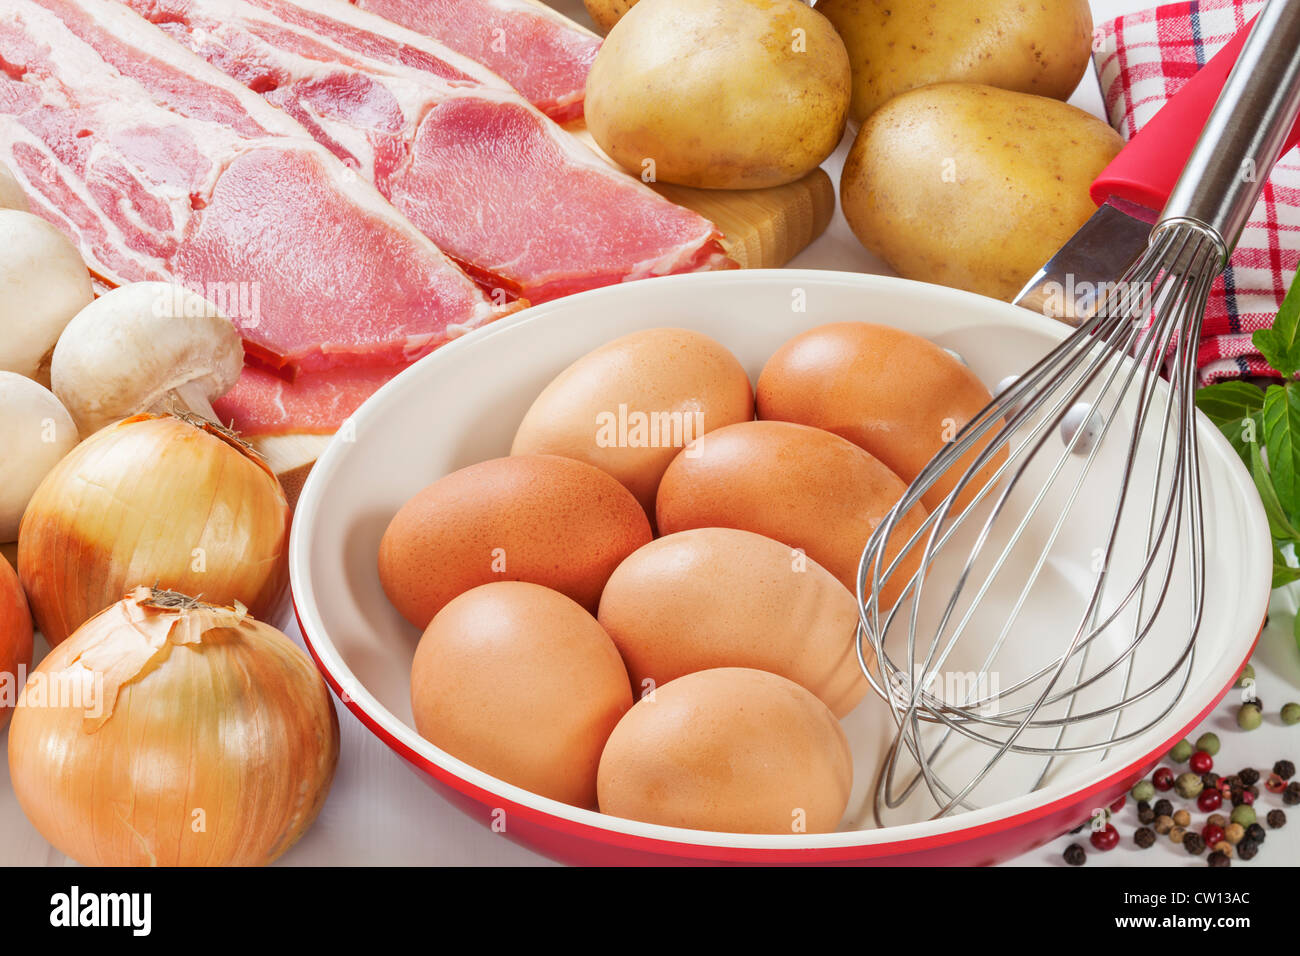 Ingredients for frittata with bacon, potato, mushroom and onion. - Stock Image